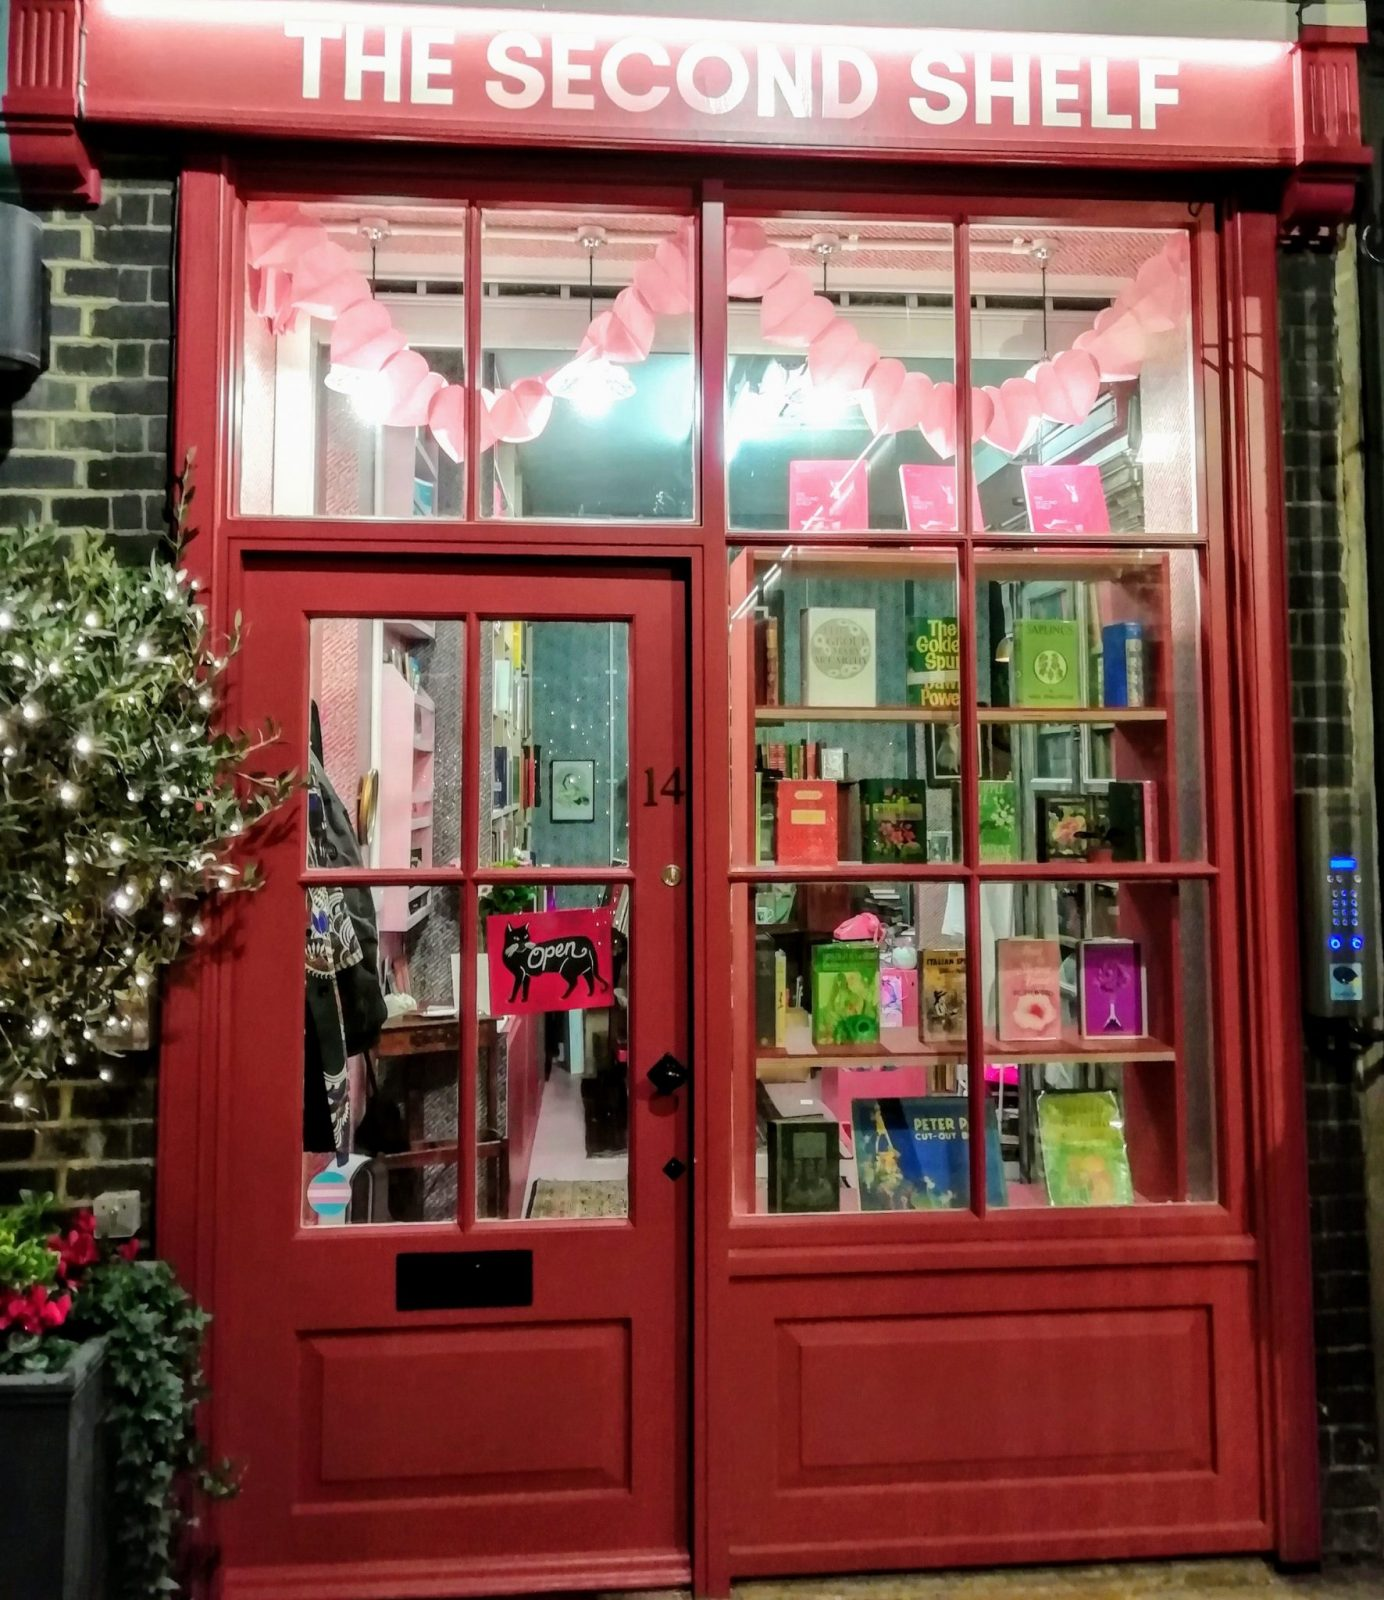 Best Cheap and Secondhand Bookshops in London 3